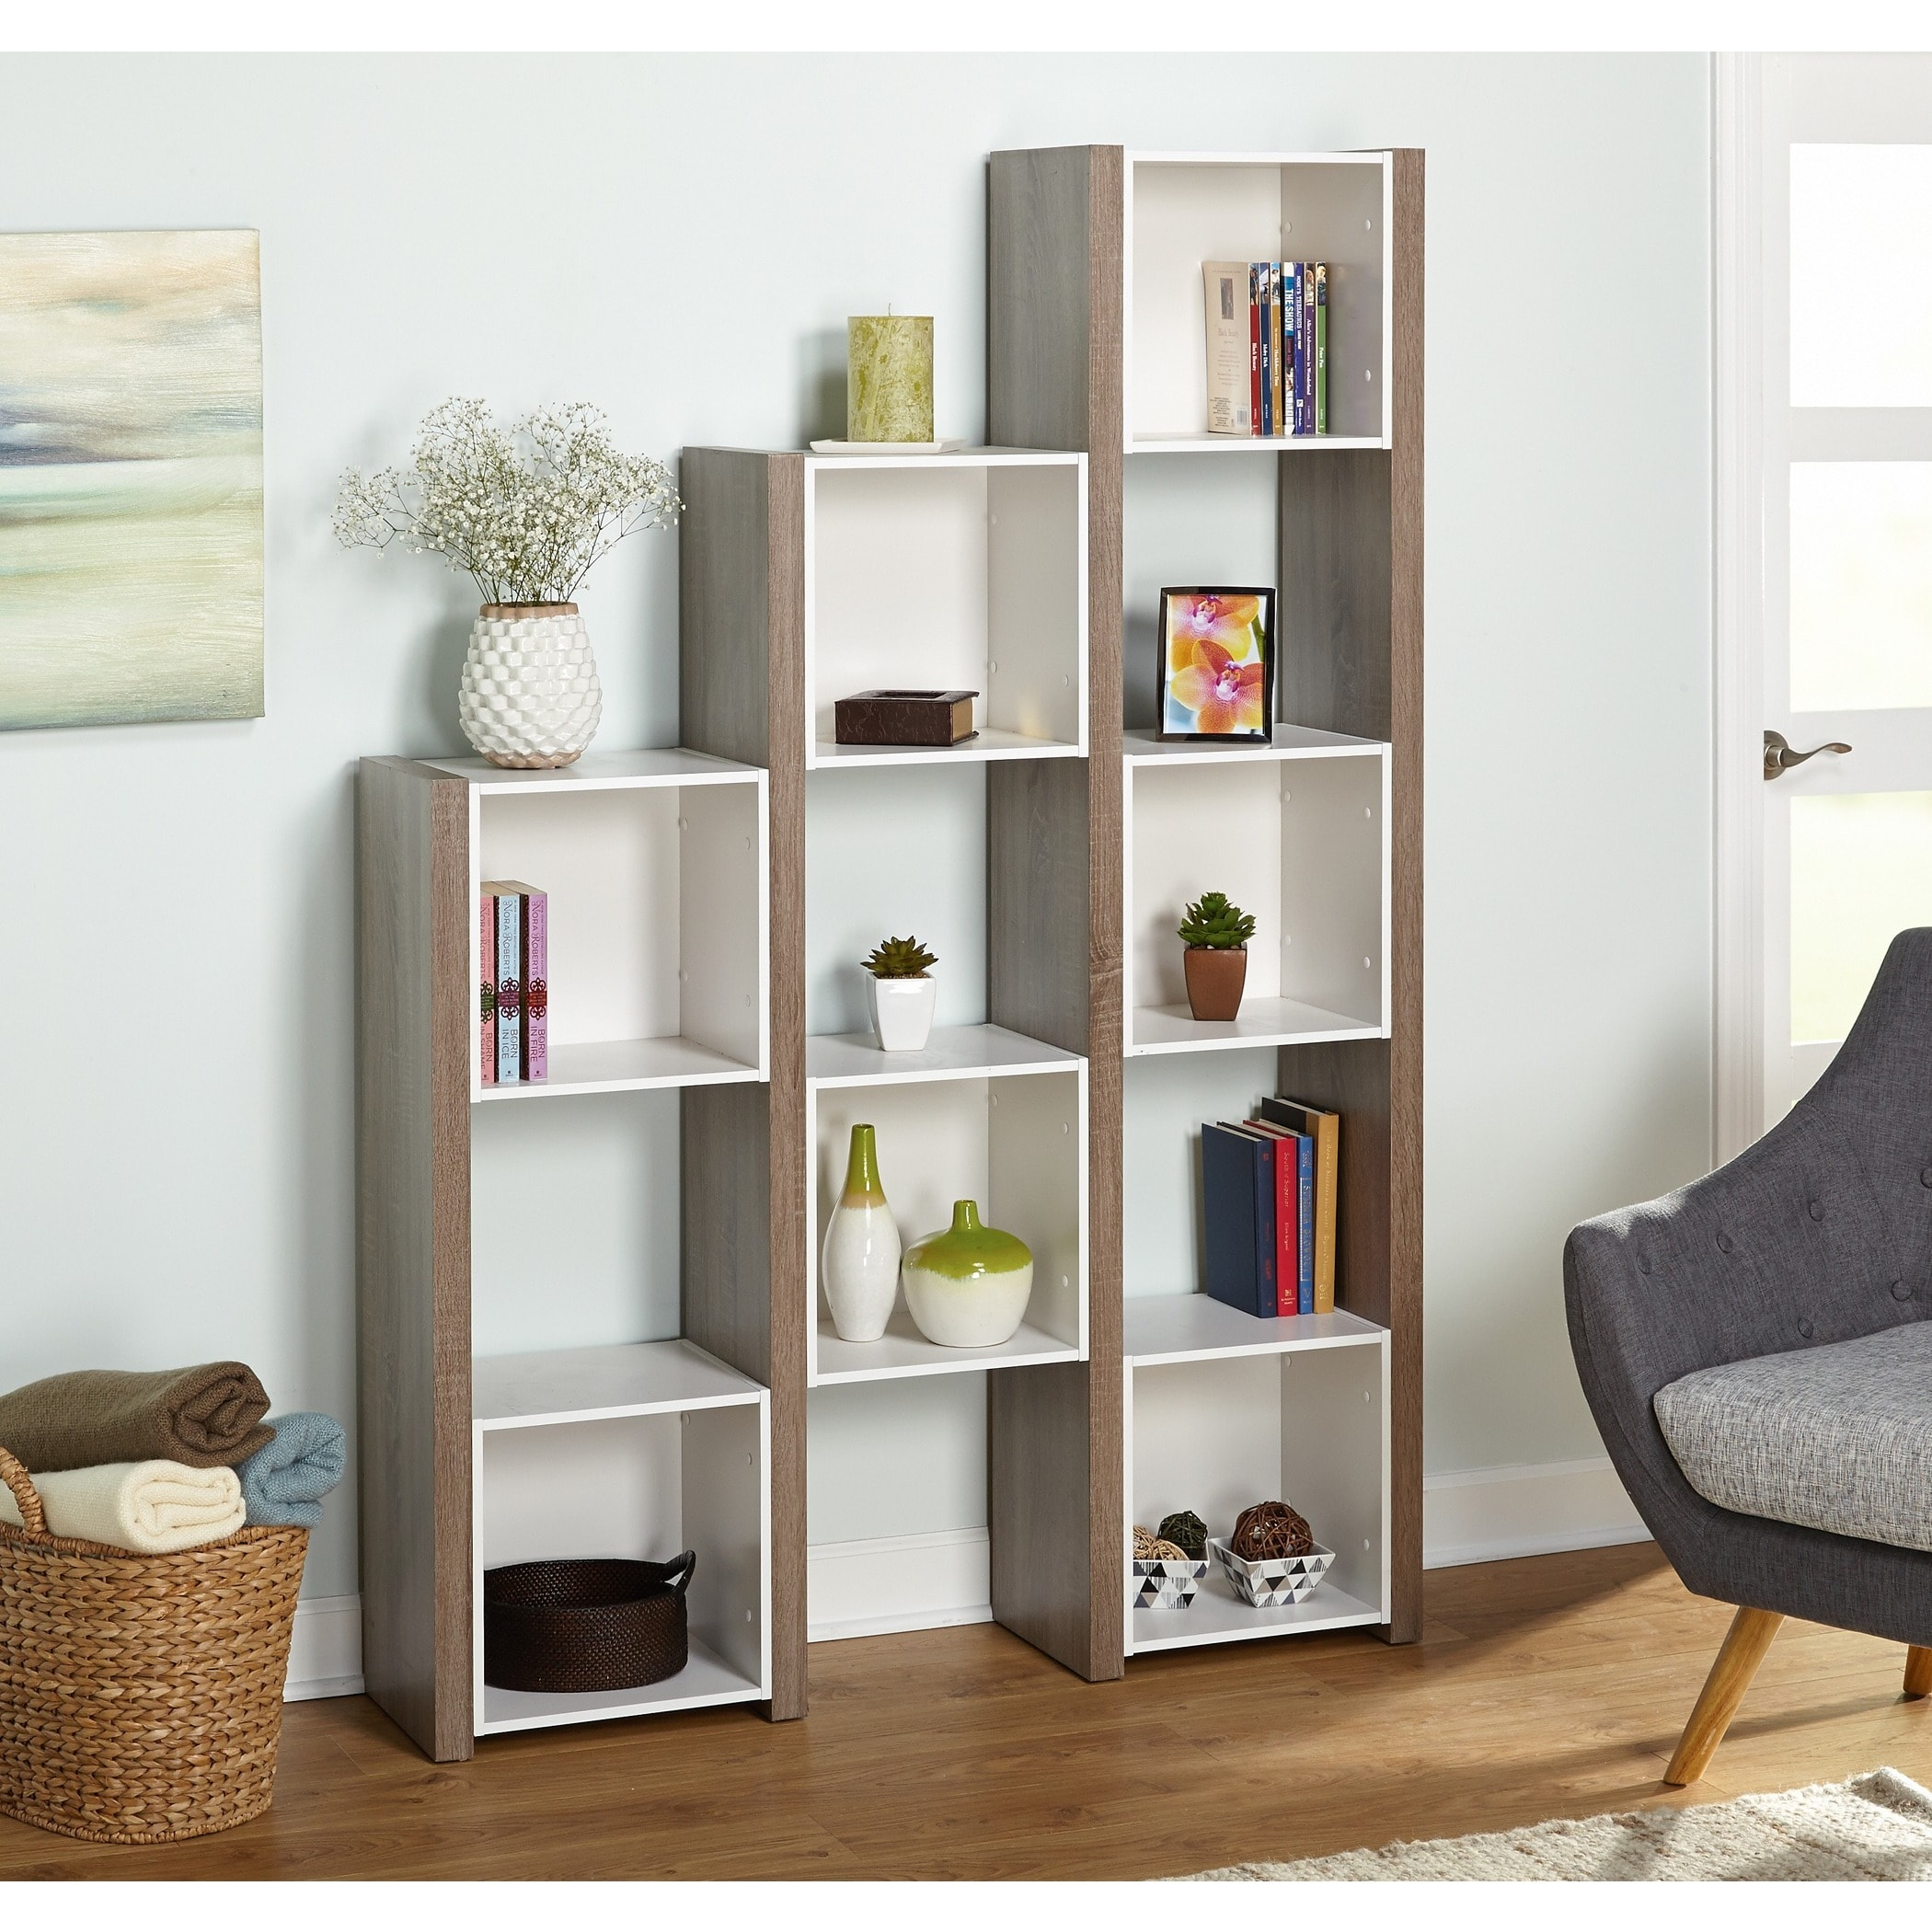 bookcase dividers divider weekender cube room bookshelves bayside costco furnishings